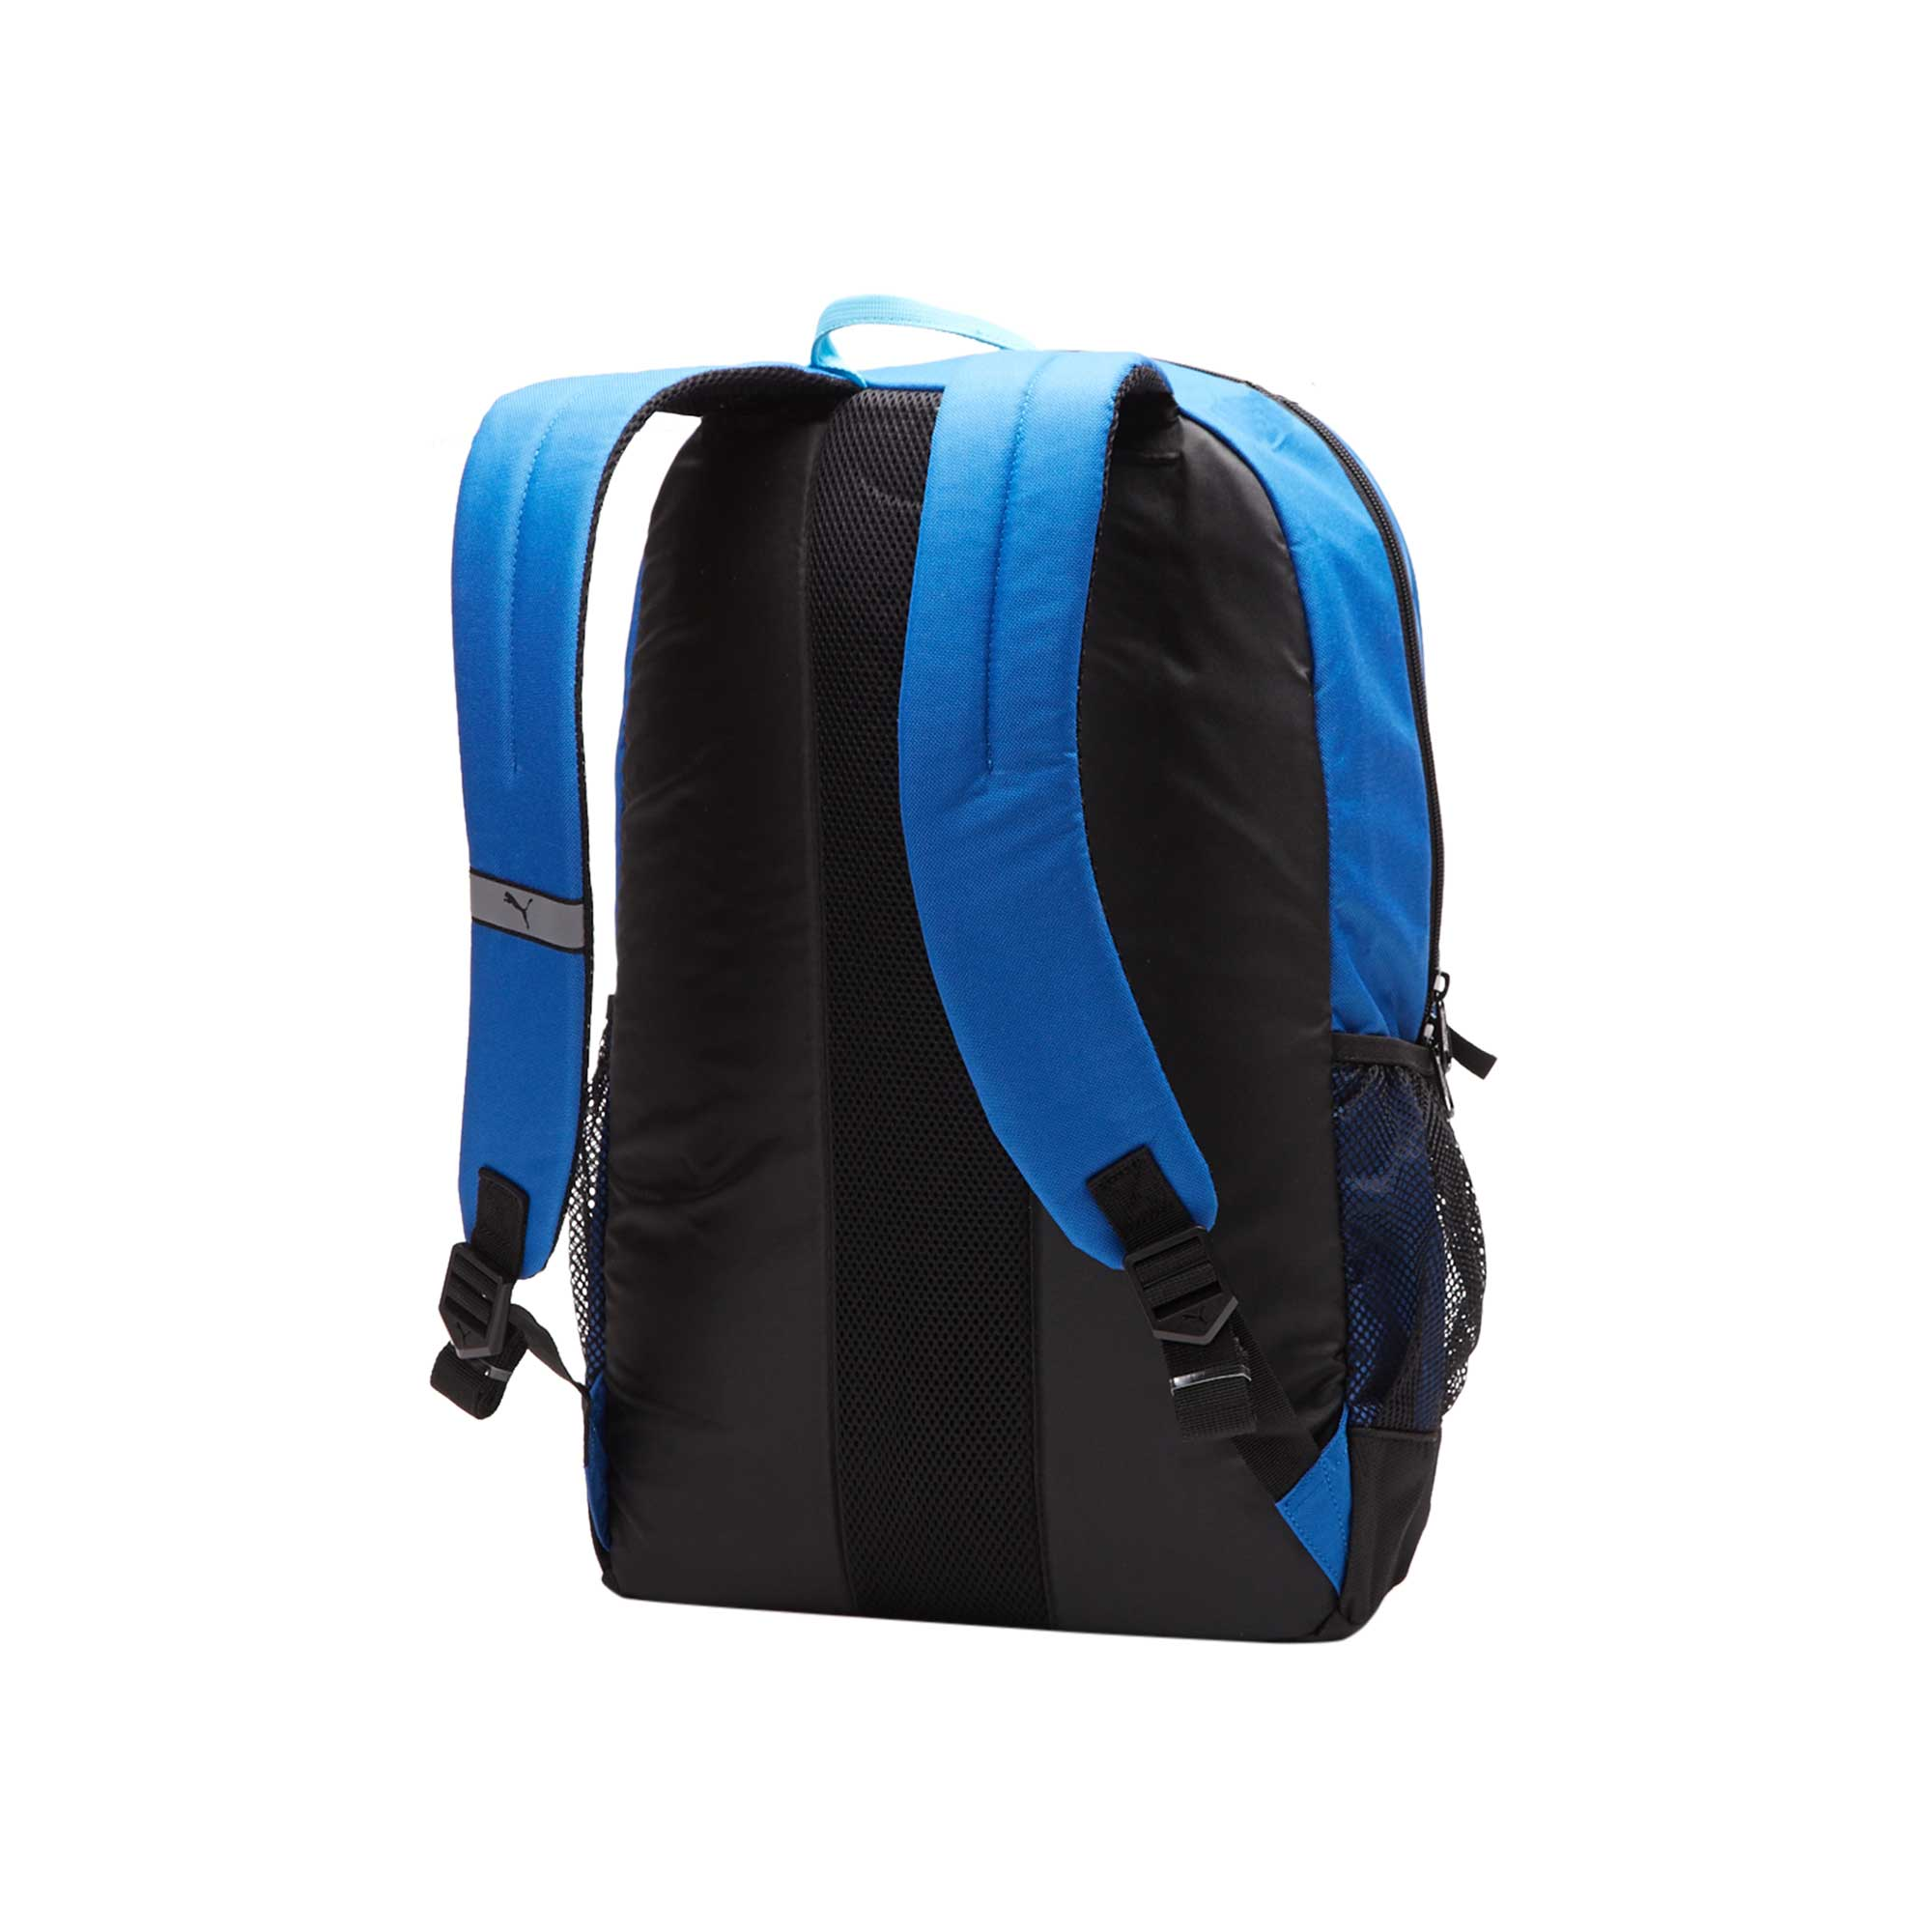 2dfc66c2d15d0 Pre-sale PUMA Hummer official Liu Yuran with the same paragraph Backpack  Deck 074706